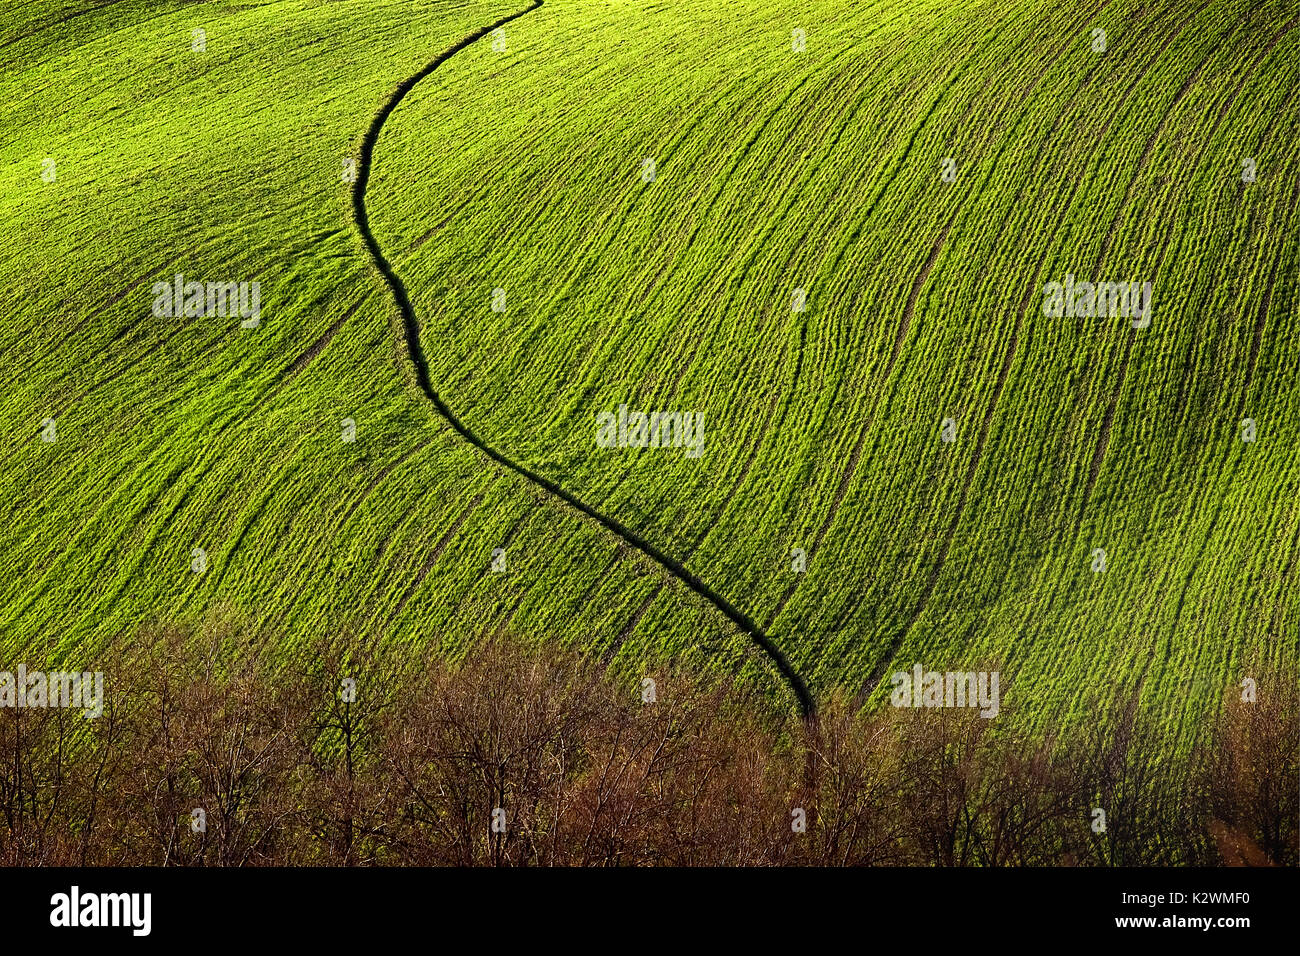 Beautiful Light on Green Tuscan field with Snake-Like drain ditch running through it. The image is abstracted by the light, color, and graphic design - Stock Image